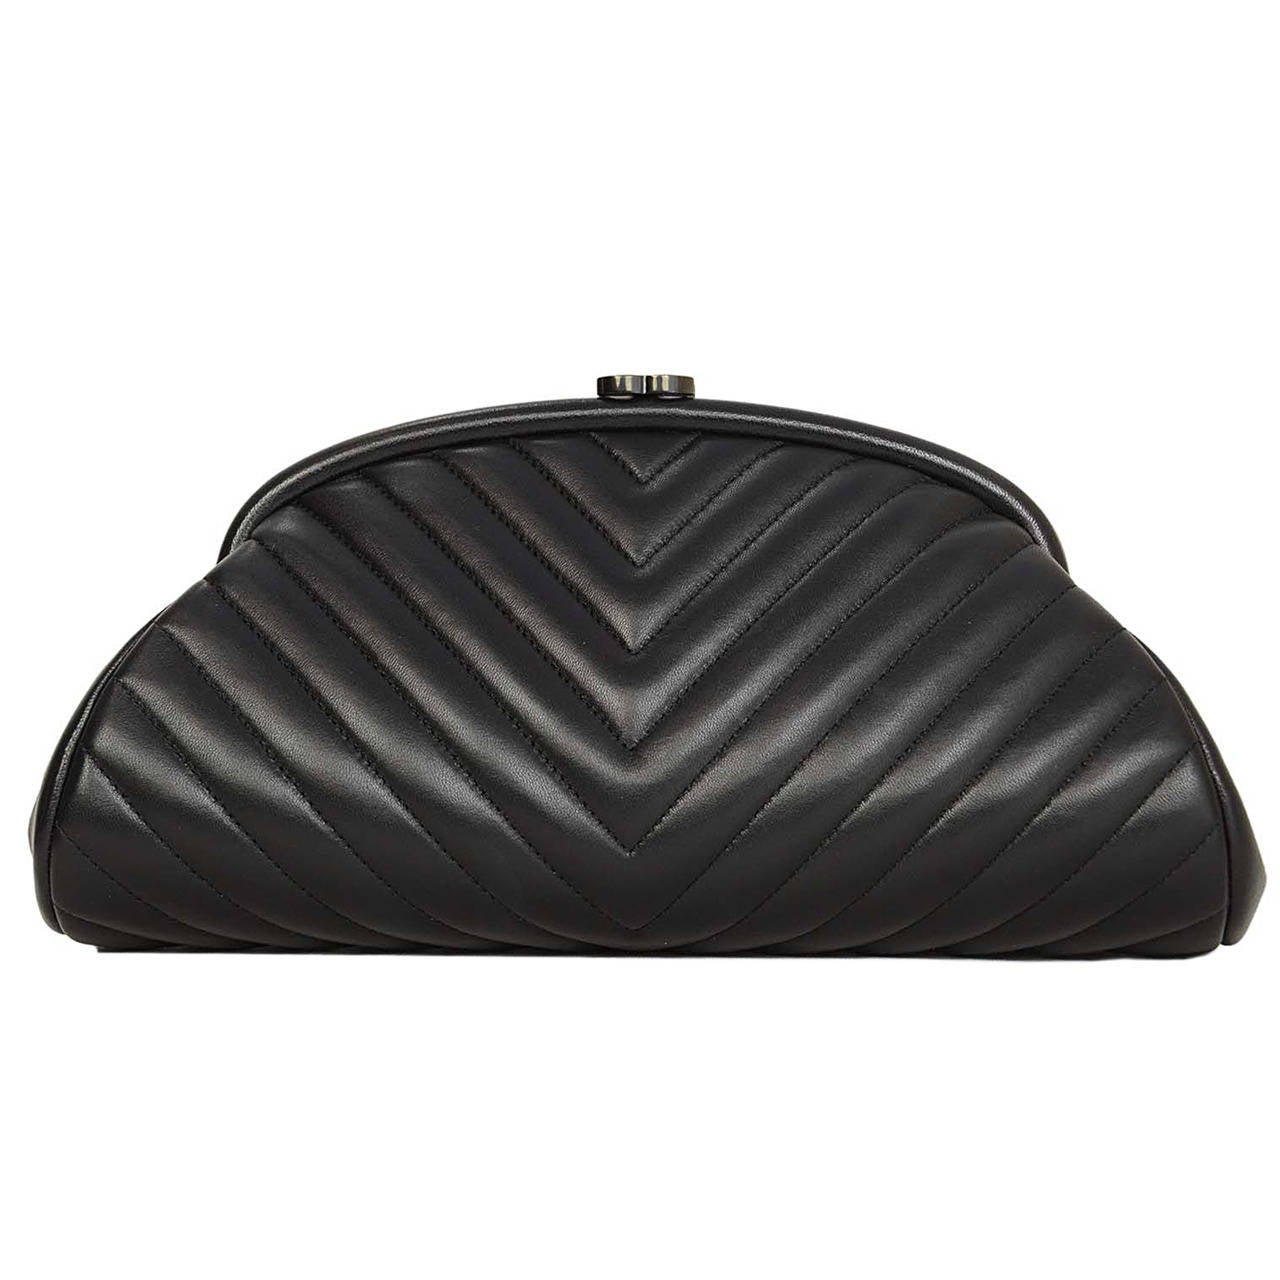 2769160e8d3383 CHANEL 2015 Black Lambskin Chevron Quilted Timeless Clutch Bag For Sale